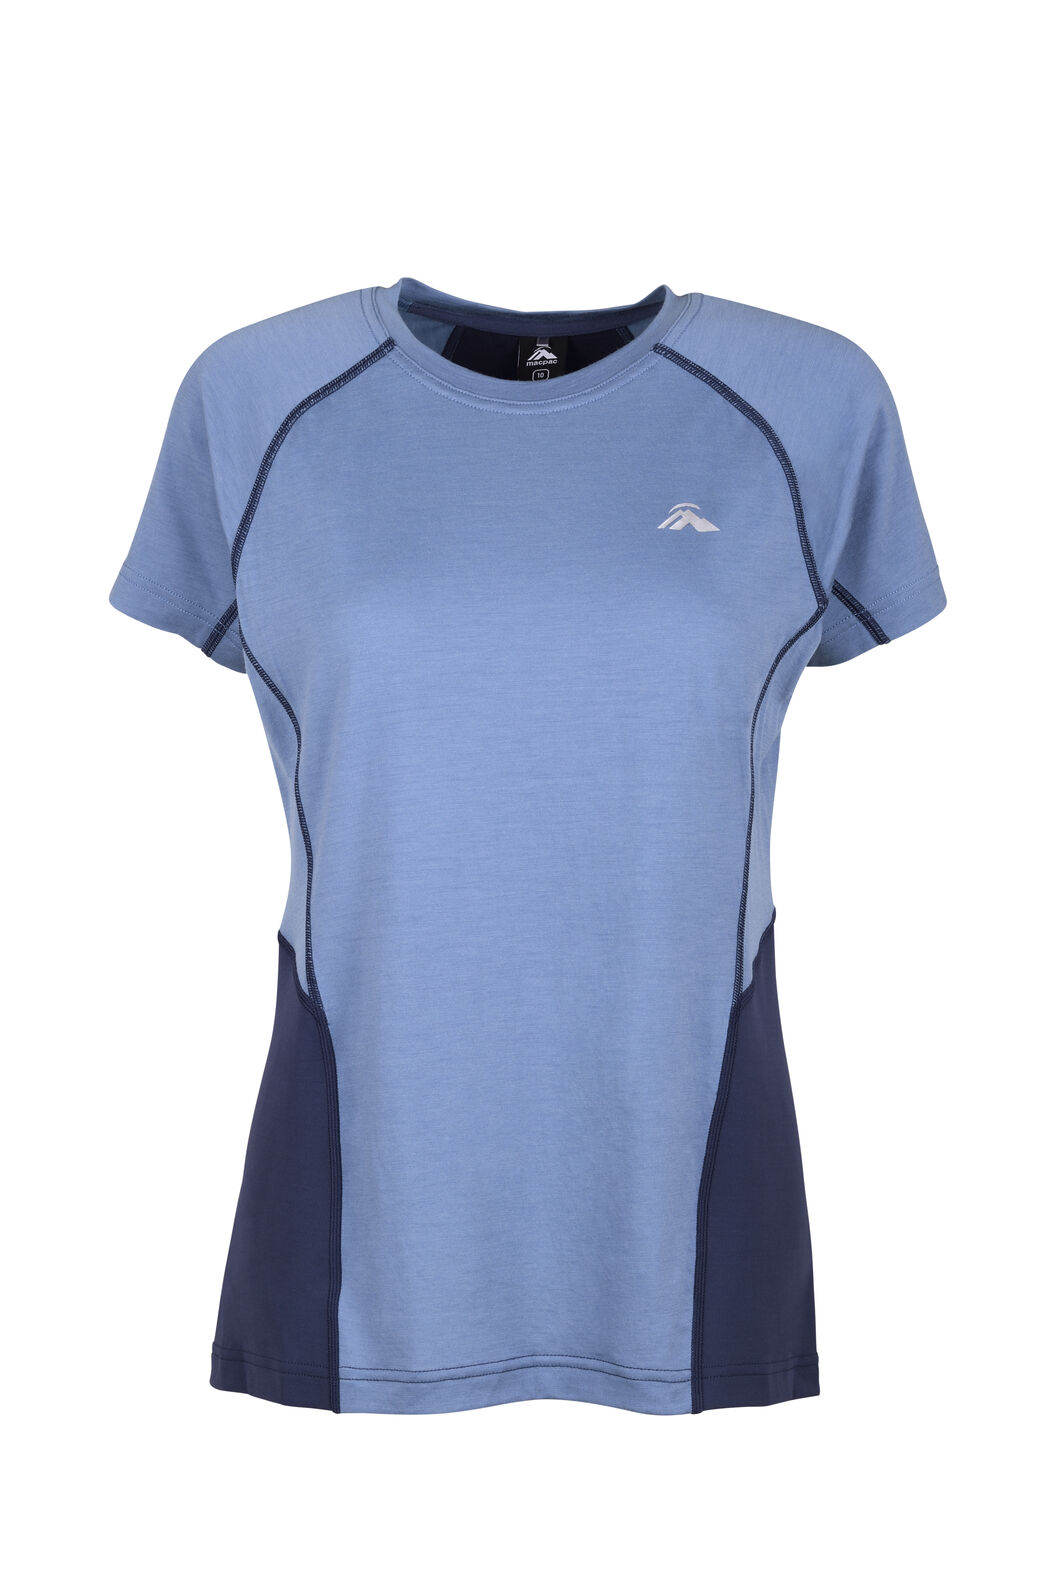 Macpac Casswell Short Sleeve Crew — Women's, China Blue/Mood Indigo, hi-res